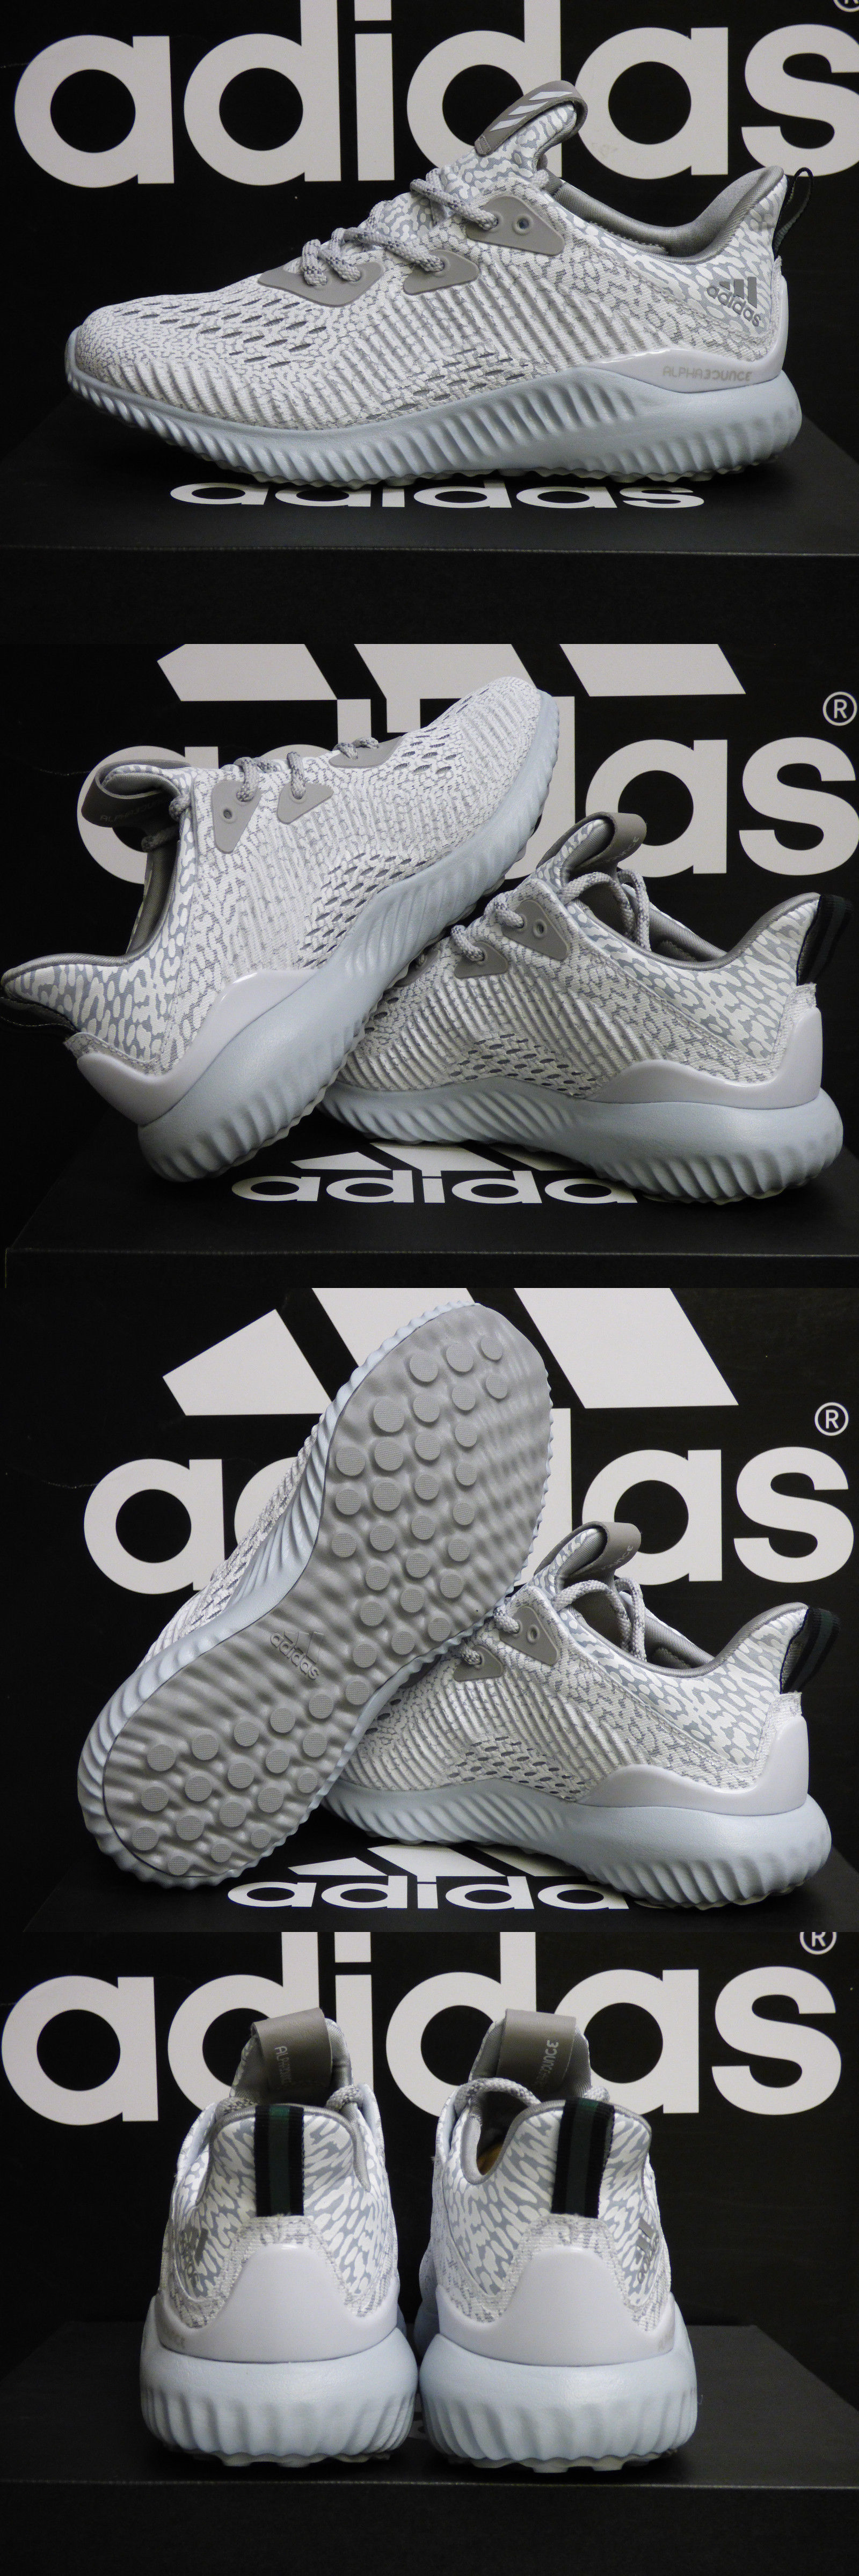 buy online 069c0 ee7a4 Women 158953 New Authentic Adidas Alphabounce Ams Women S Running Shoes -  White Bw1132